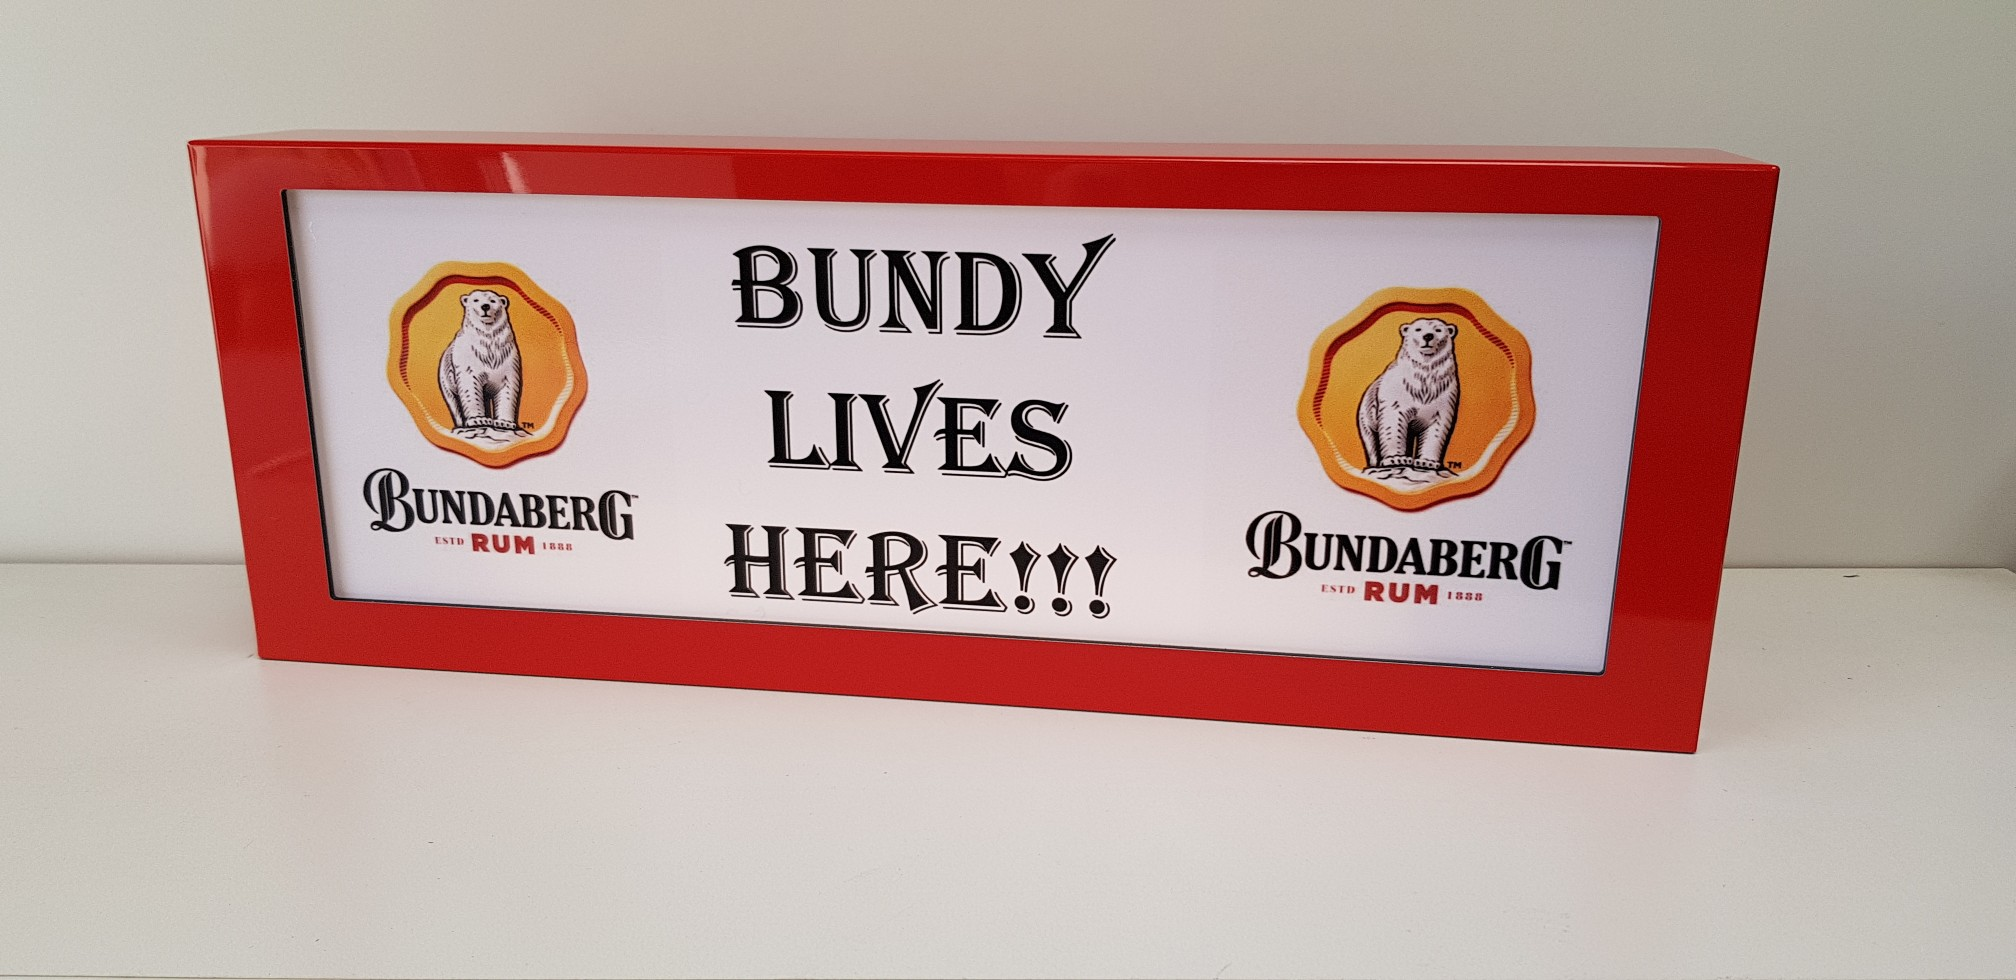 bundy-logolight.jpg